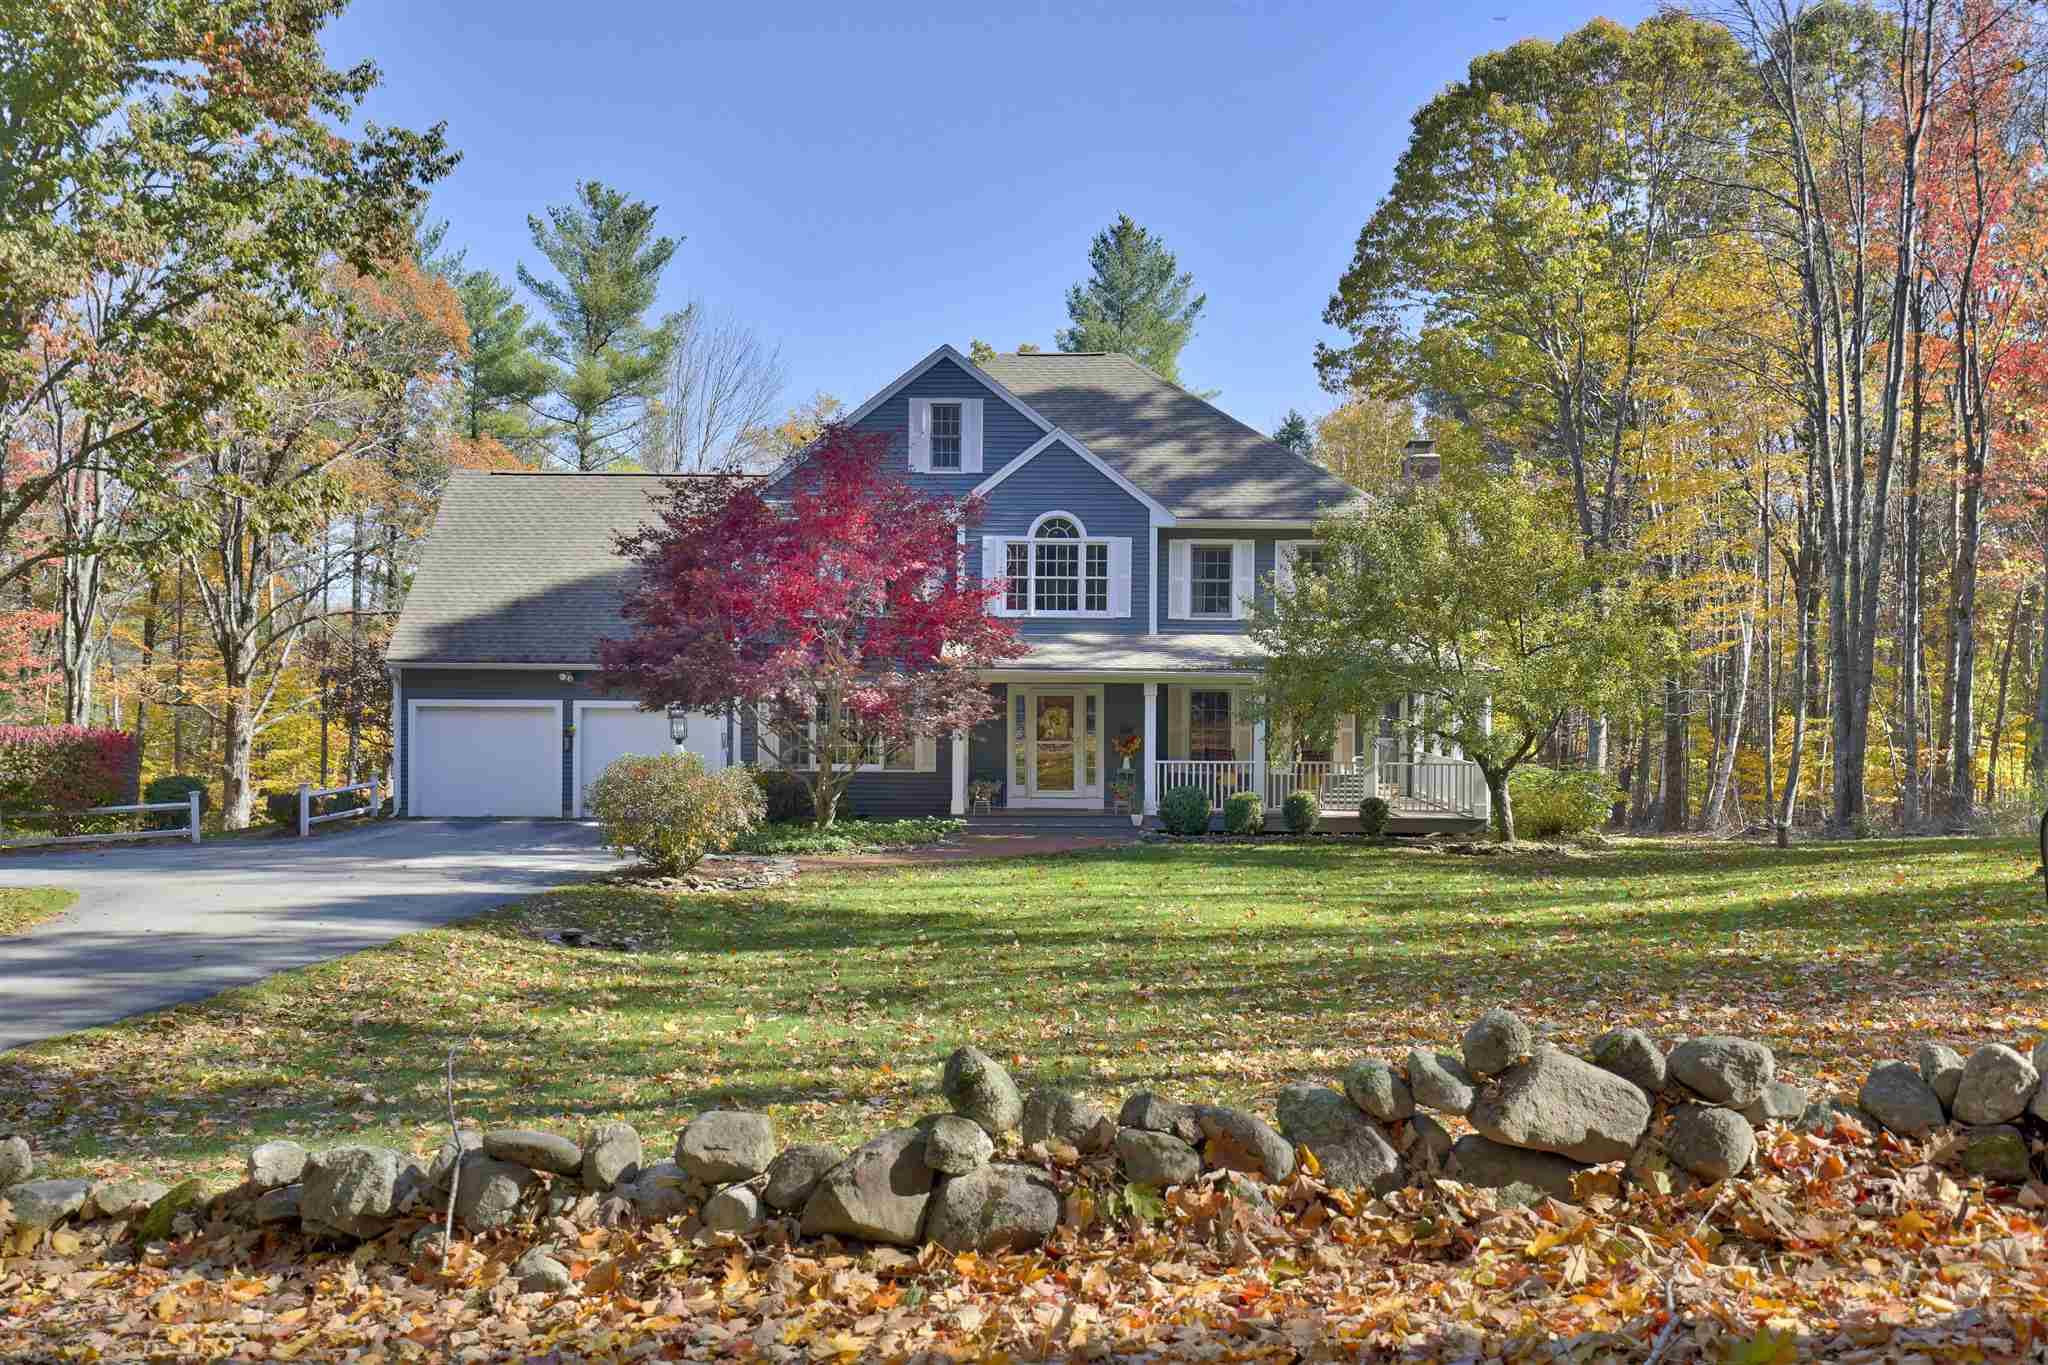 MLS 4794801: 31 Green Road, Amherst NH